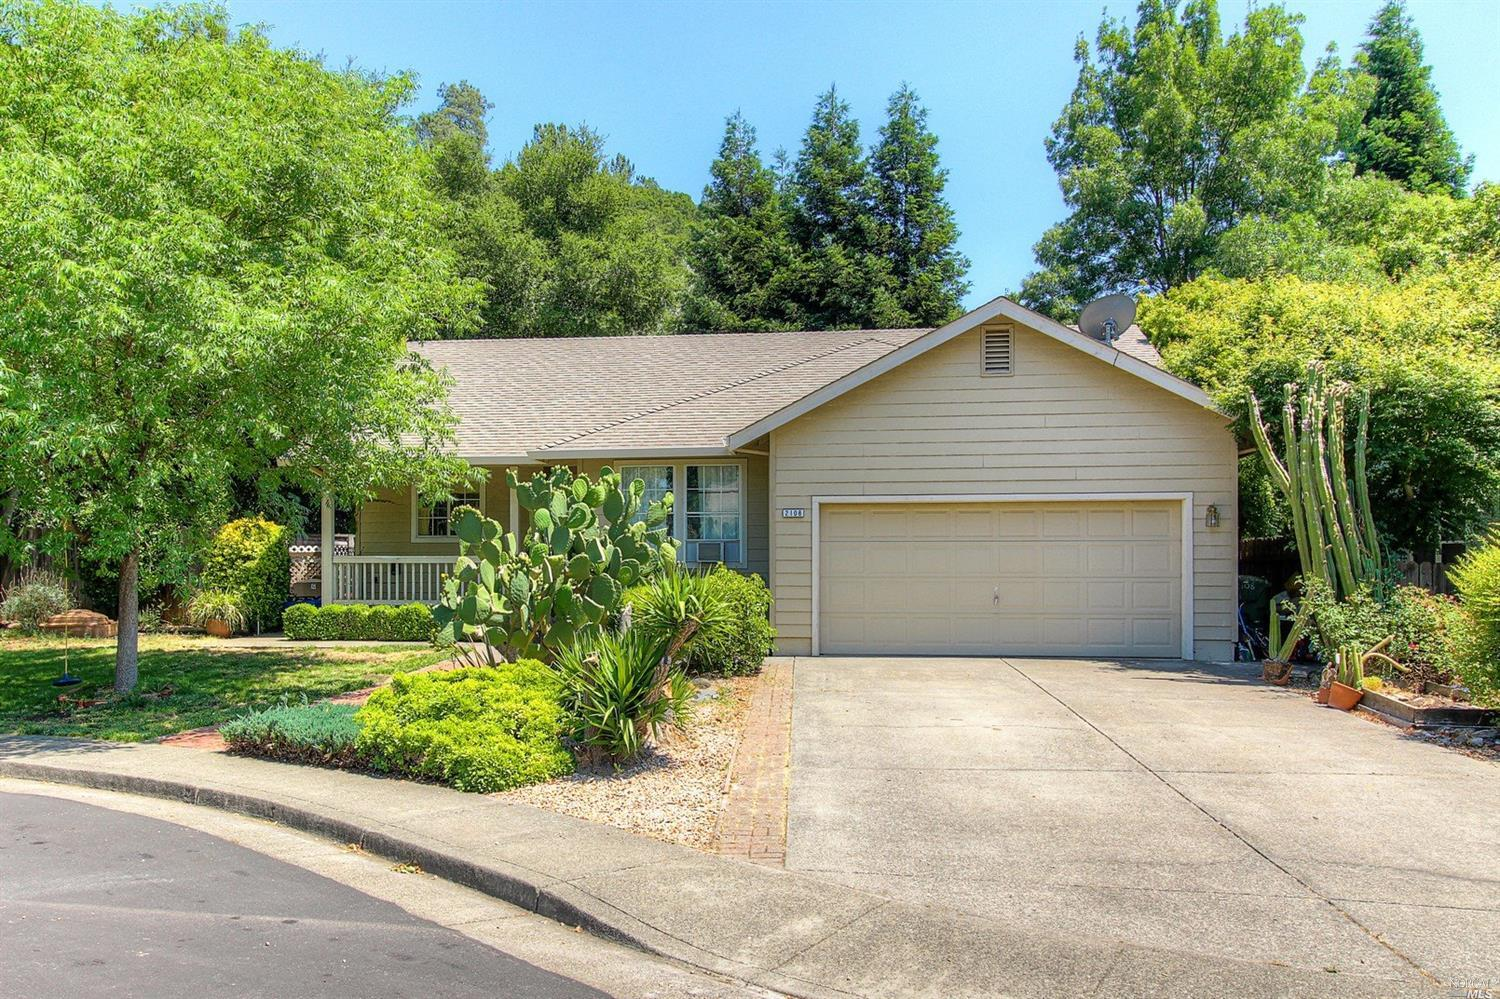 2108 Tablerock court Calistoga, CA 94515 - MLS #: 21713055